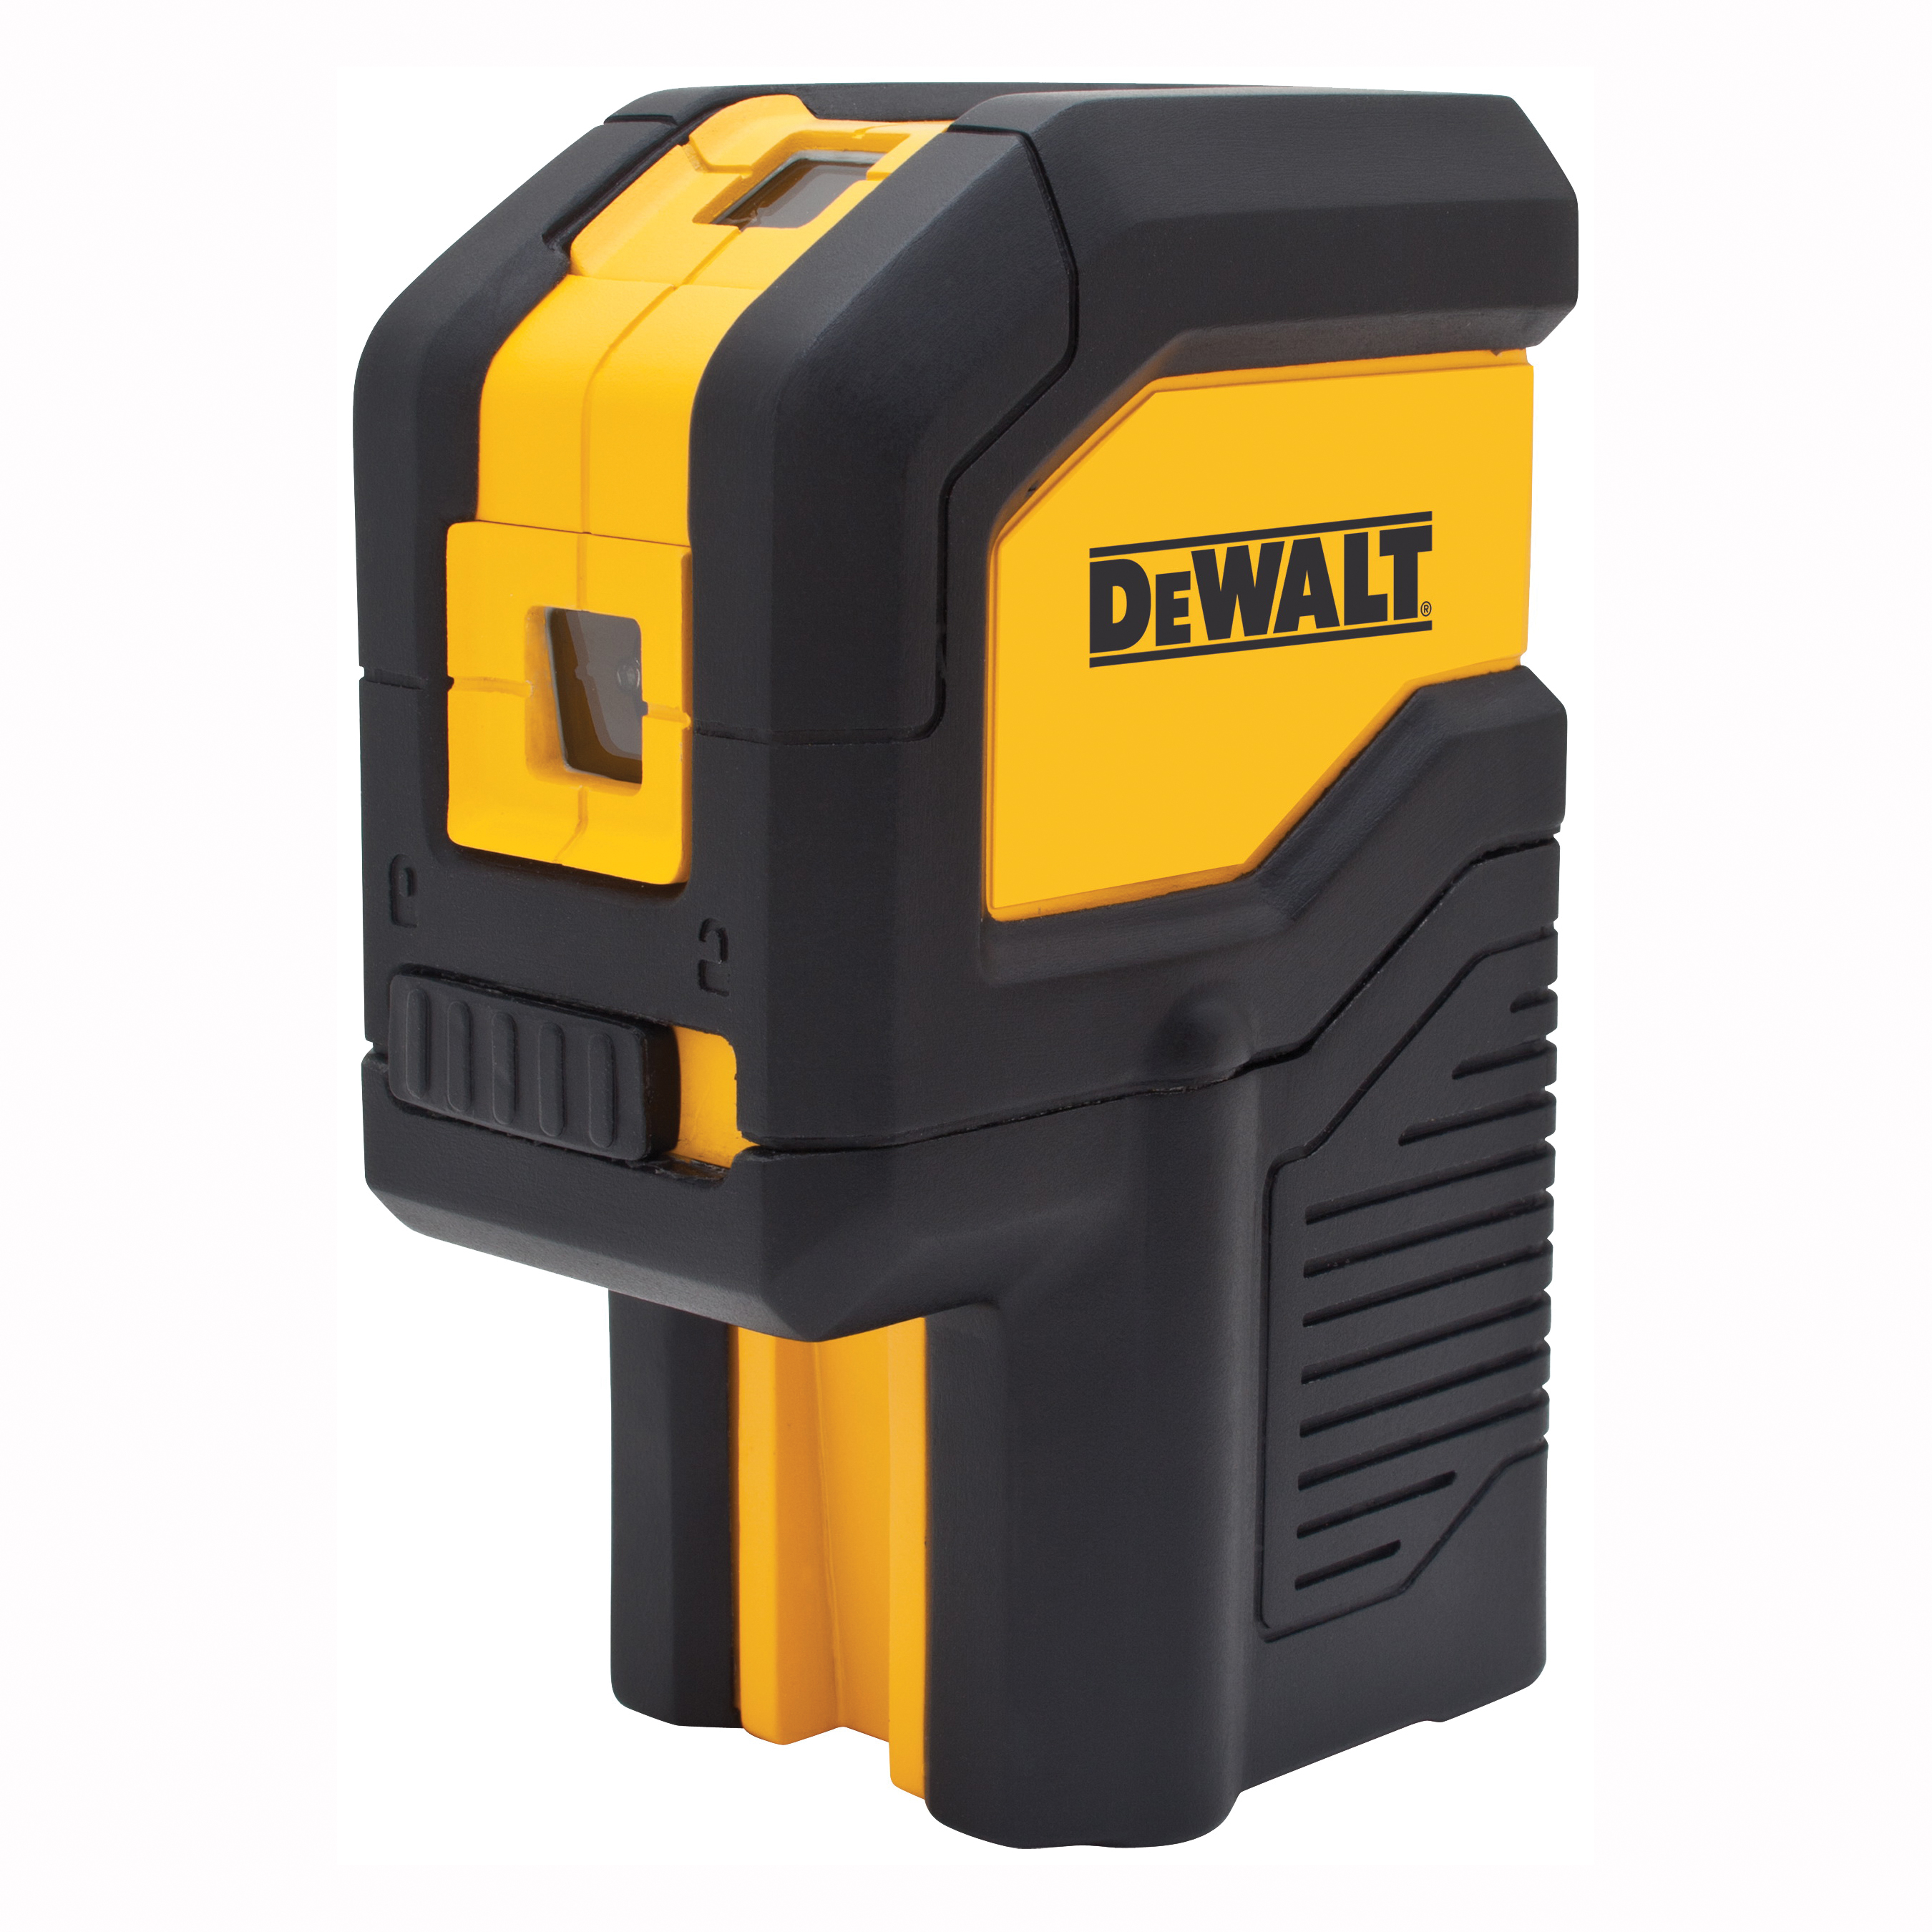 Picture of DeWALT DW08301 Laser Level, 100 ft, +/-1/8 in at 30 ft Accuracy, Red Laser